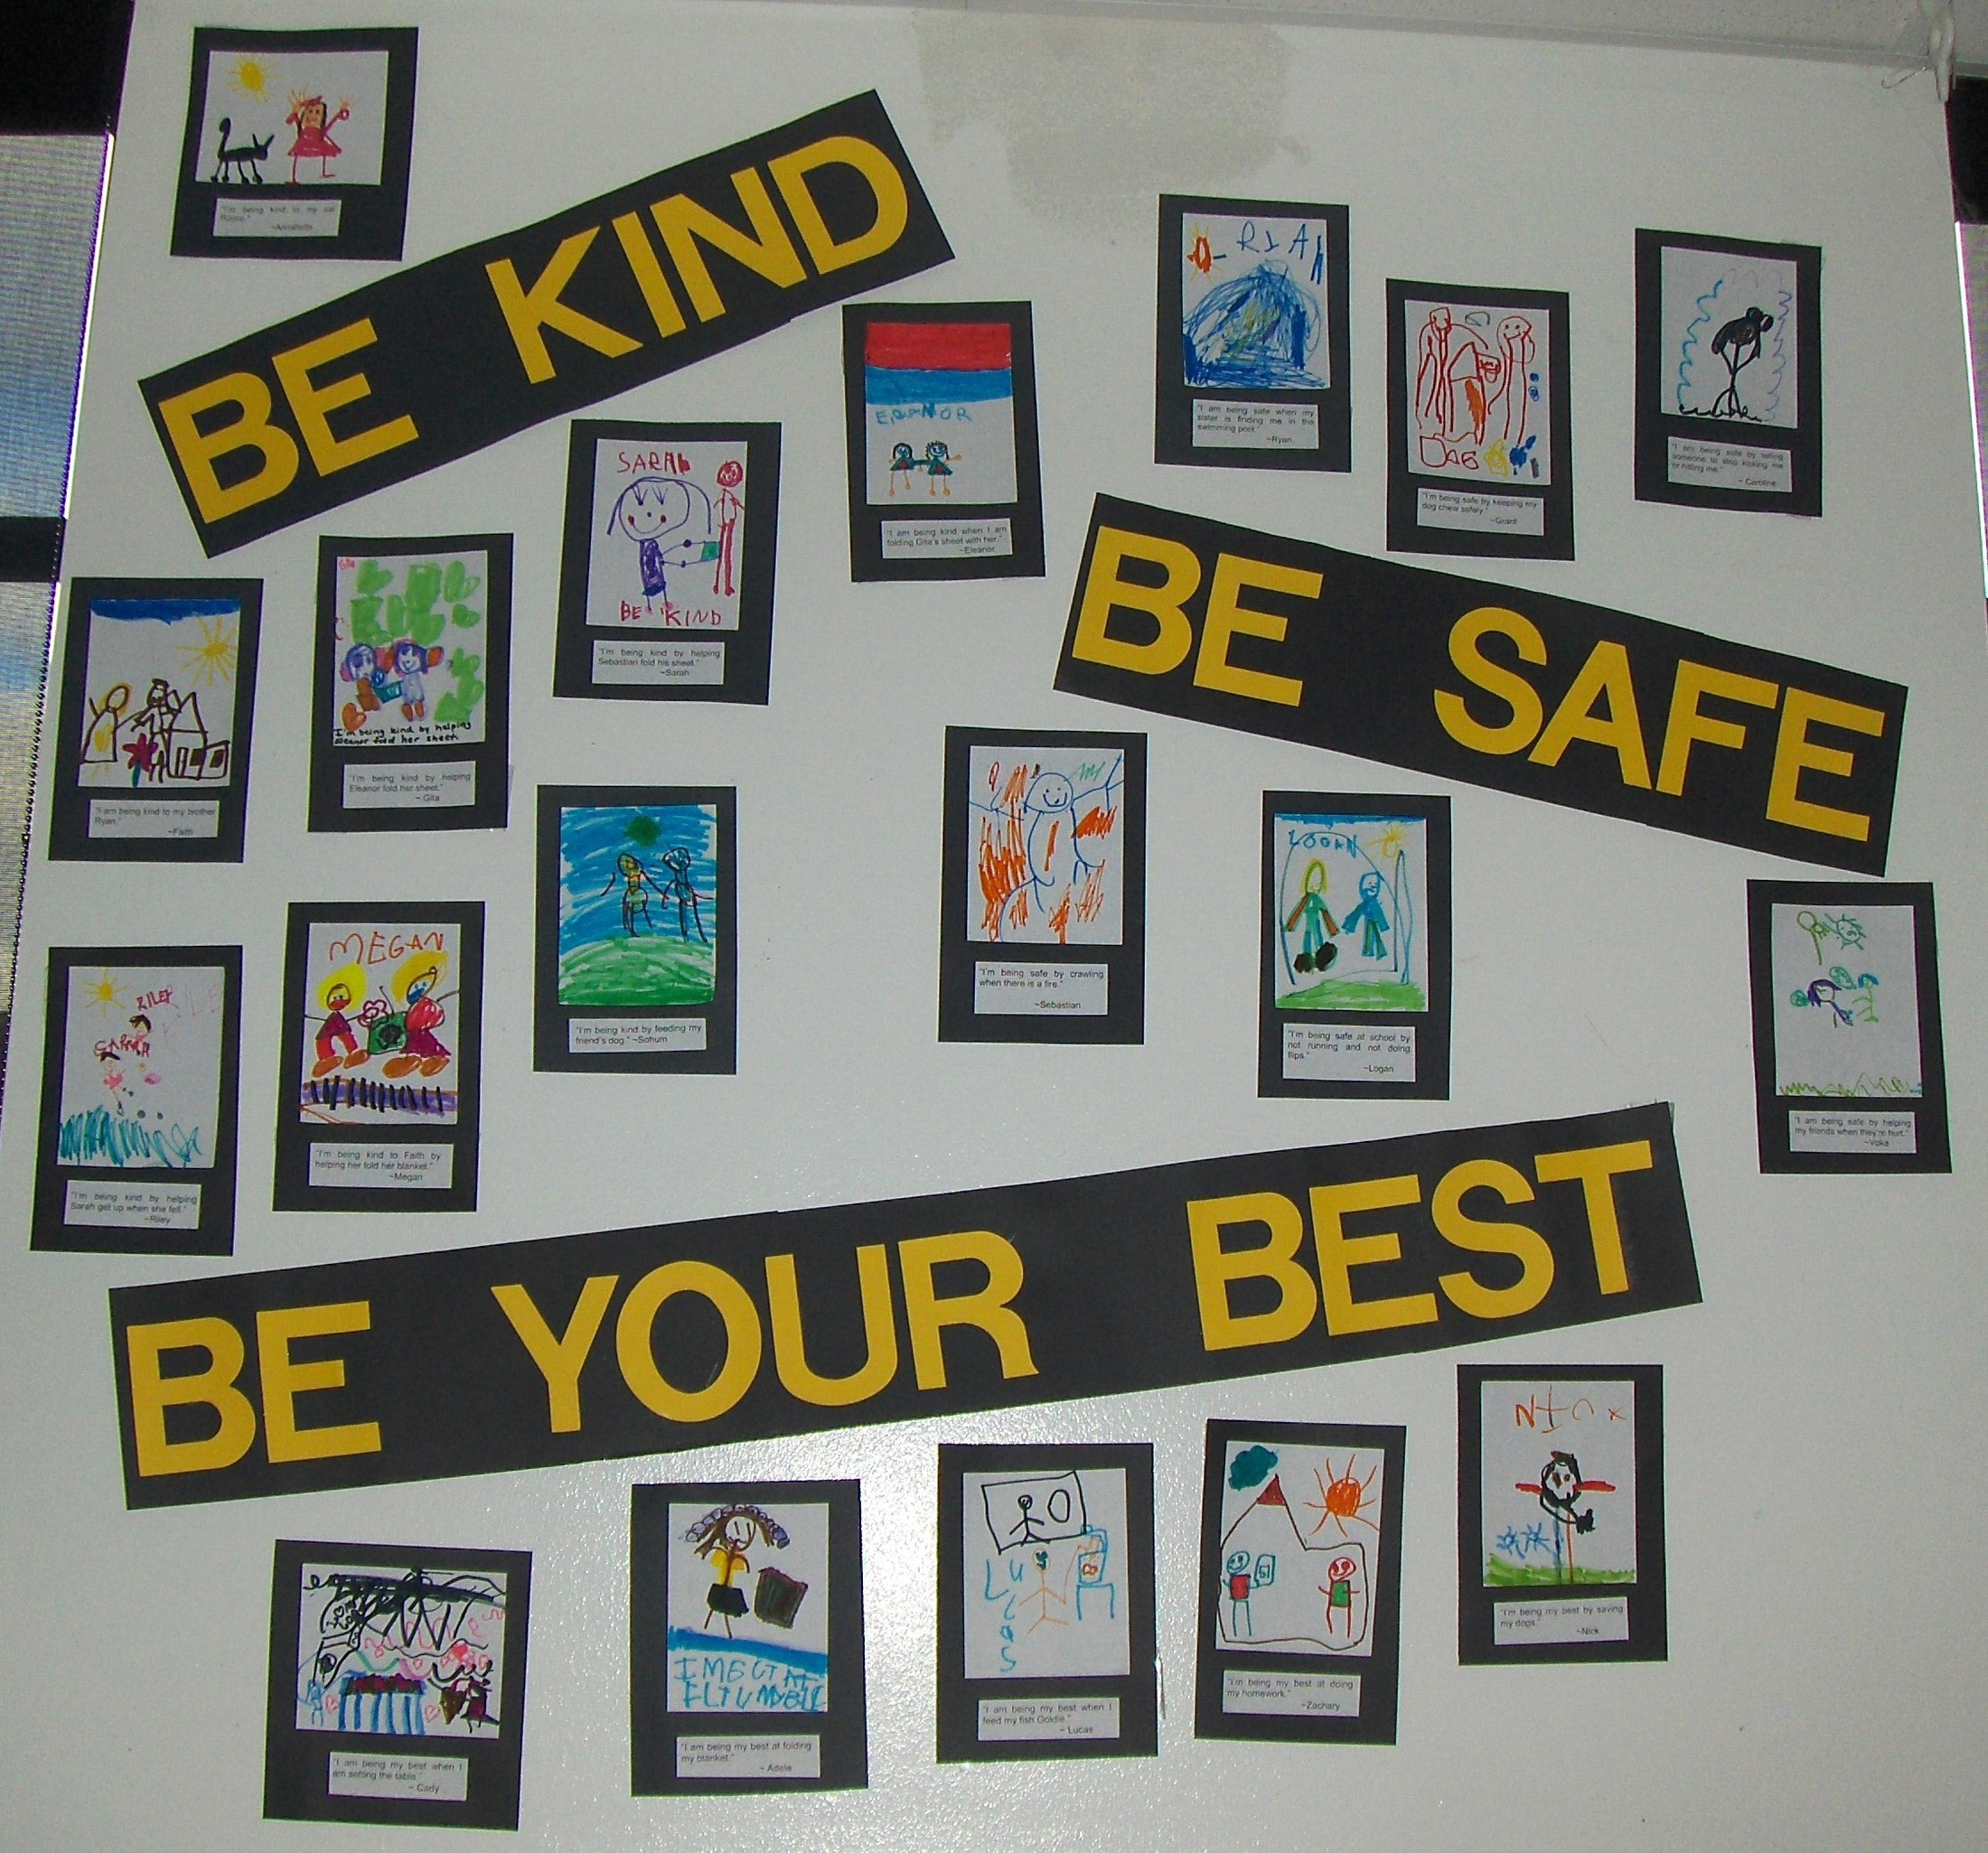 Be Kind  Be Safe  Be your Best.